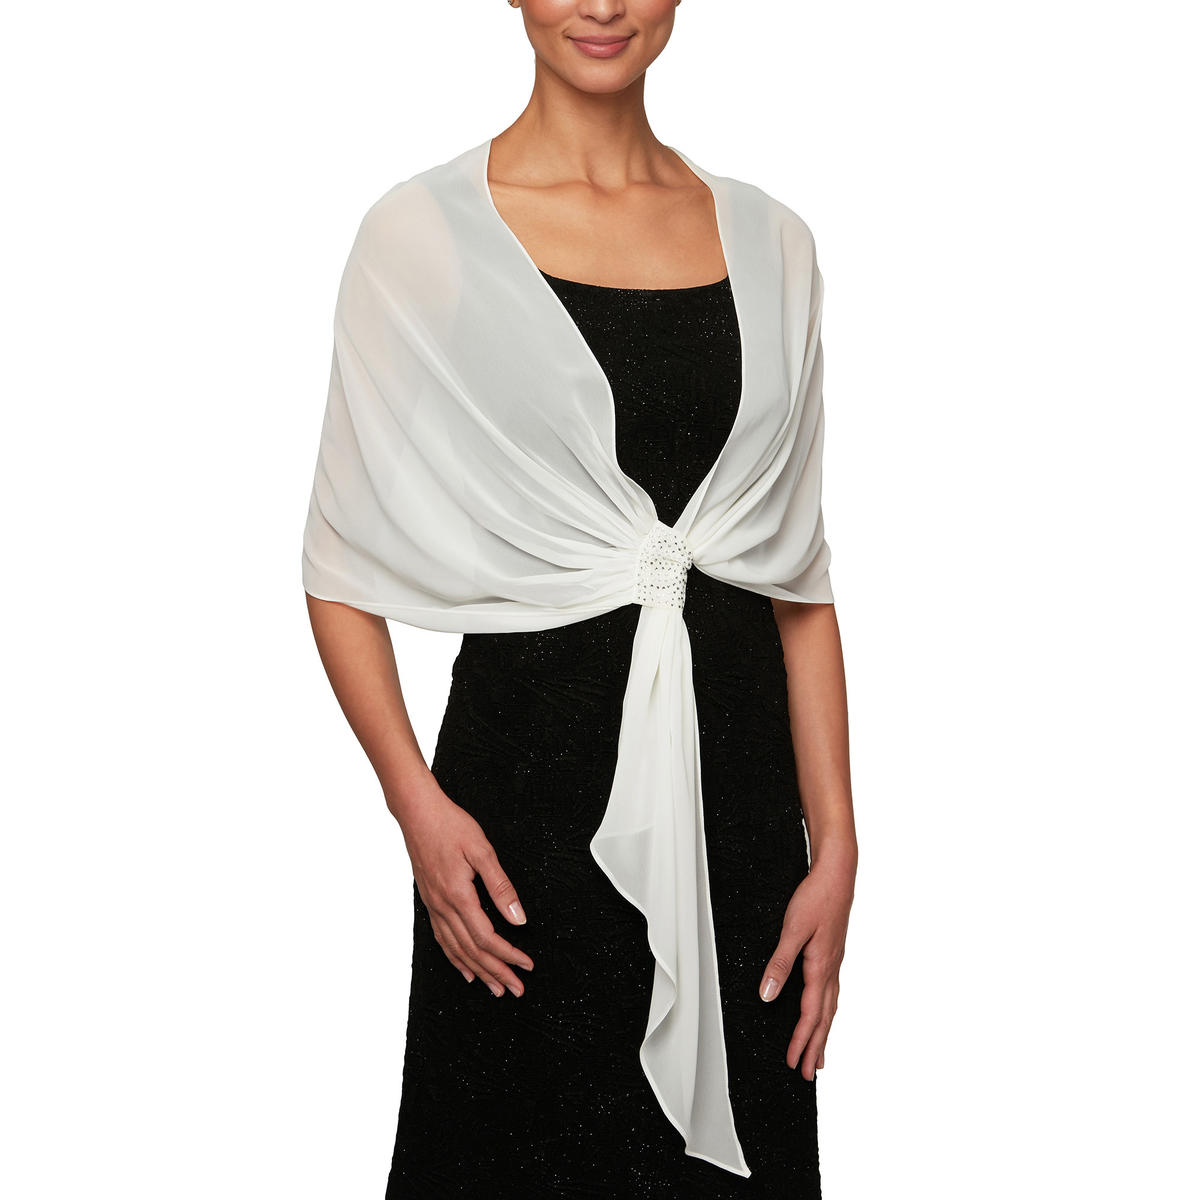 ALEX APPAREL GROUP INC - Pull Through Shawl